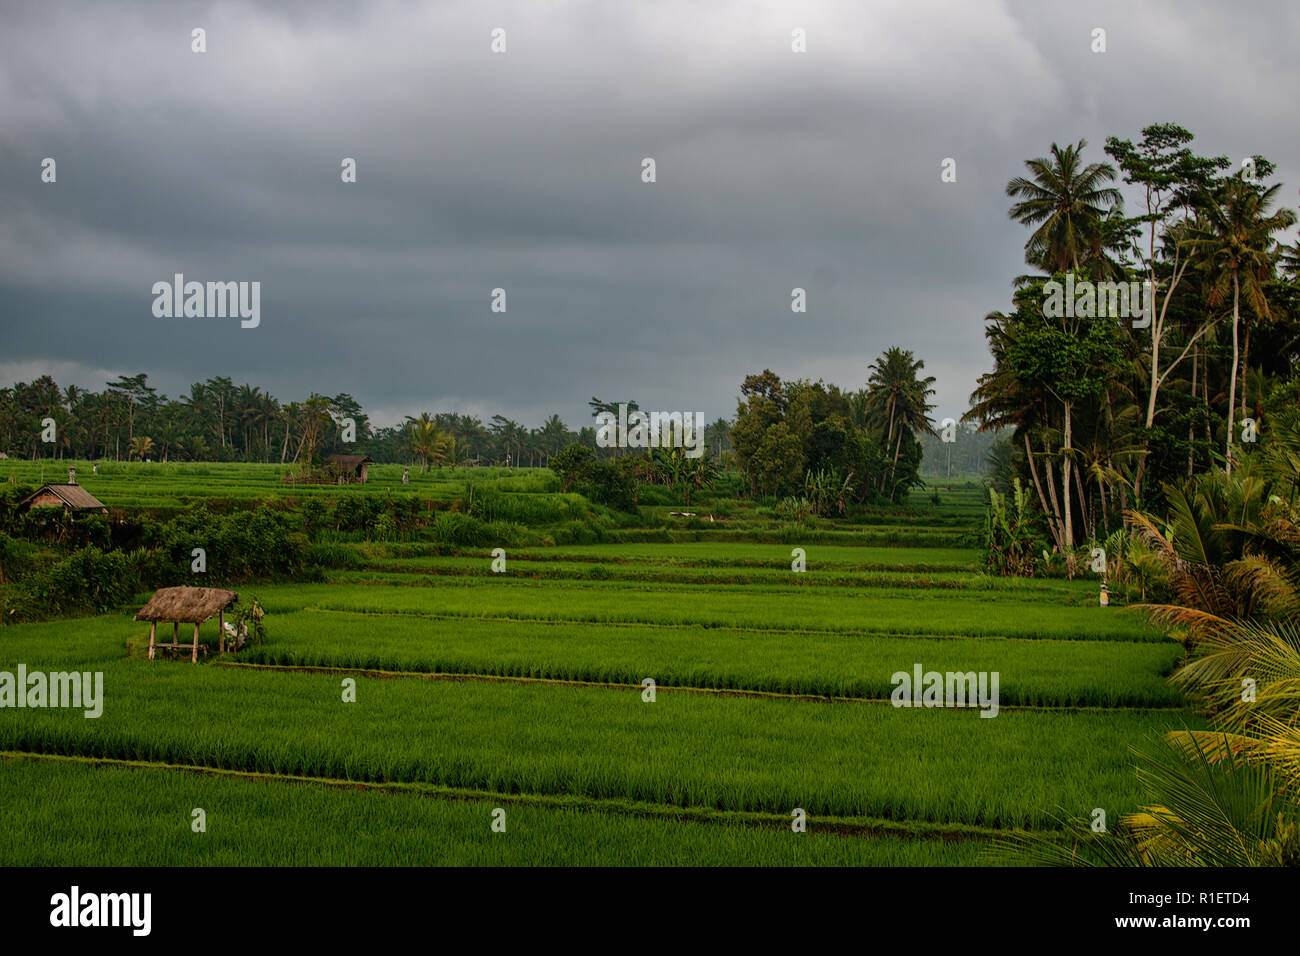 Beautiful fresh green organic bali rise paddies with along standing smalls traditionals house and palm tree forest, cloudy horizon. Backgrounds, Bali. Rice fields banner Stock Photo